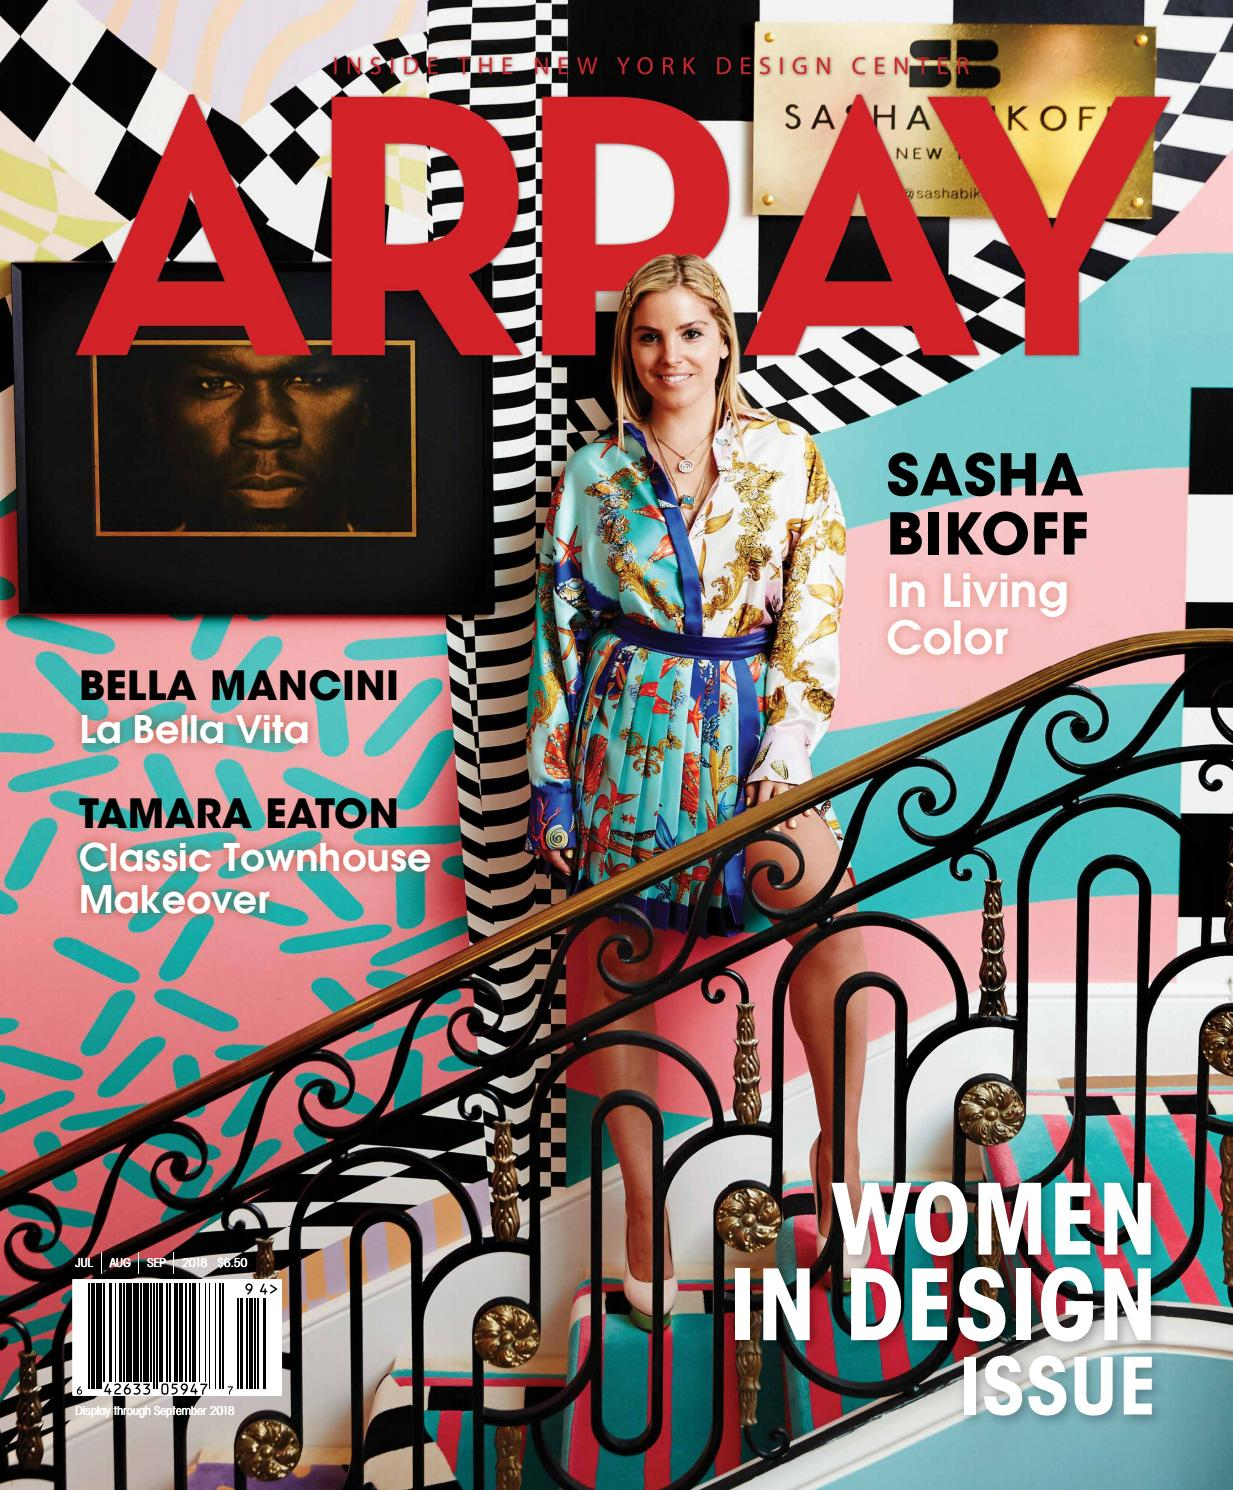 The Top 10 Interior Design Magazines You Should Read 3 Interior Design Magazines The Top 10 Interior Design Magazines You Should Read The Top 10 Interior Design Magazines You Should Read 3